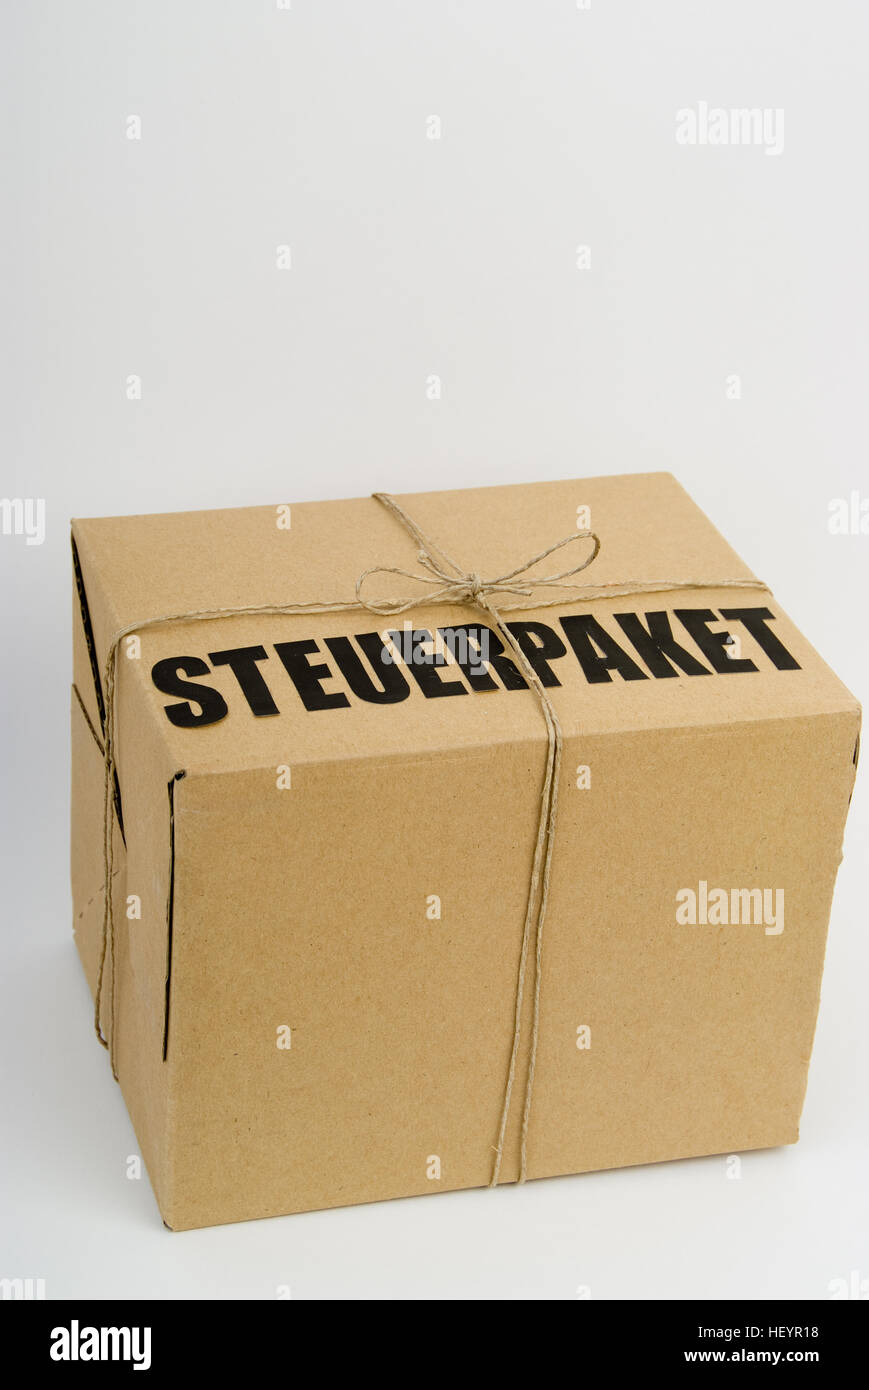 'Steuerpaket' - symbol for tax reforms - Stock Image